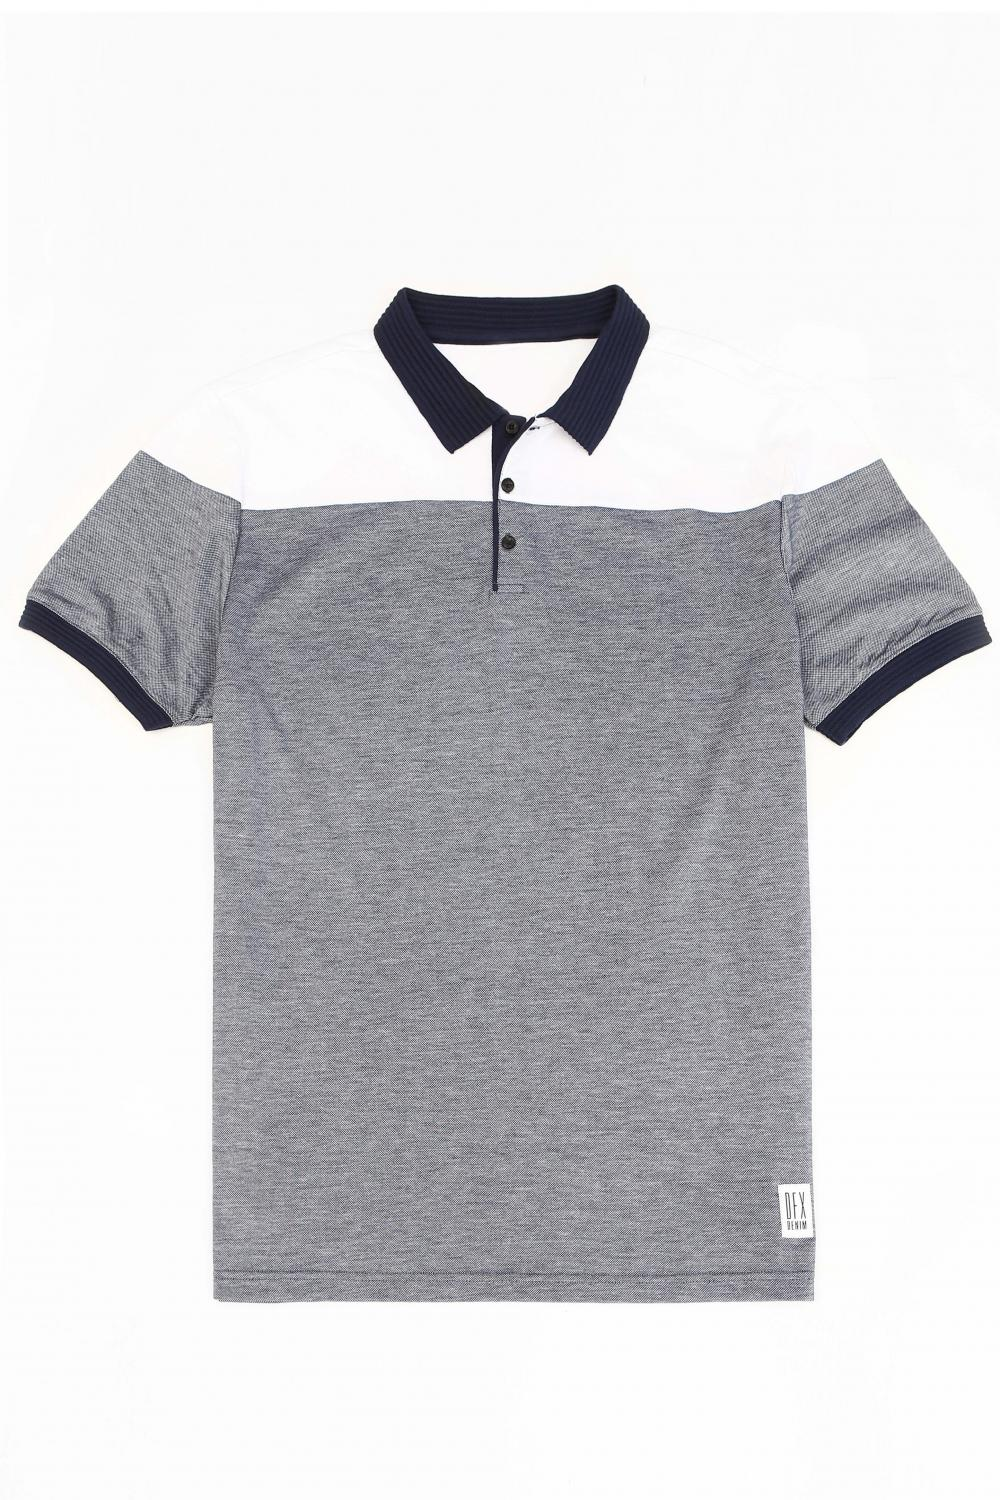 Men's cut and sewn Polo